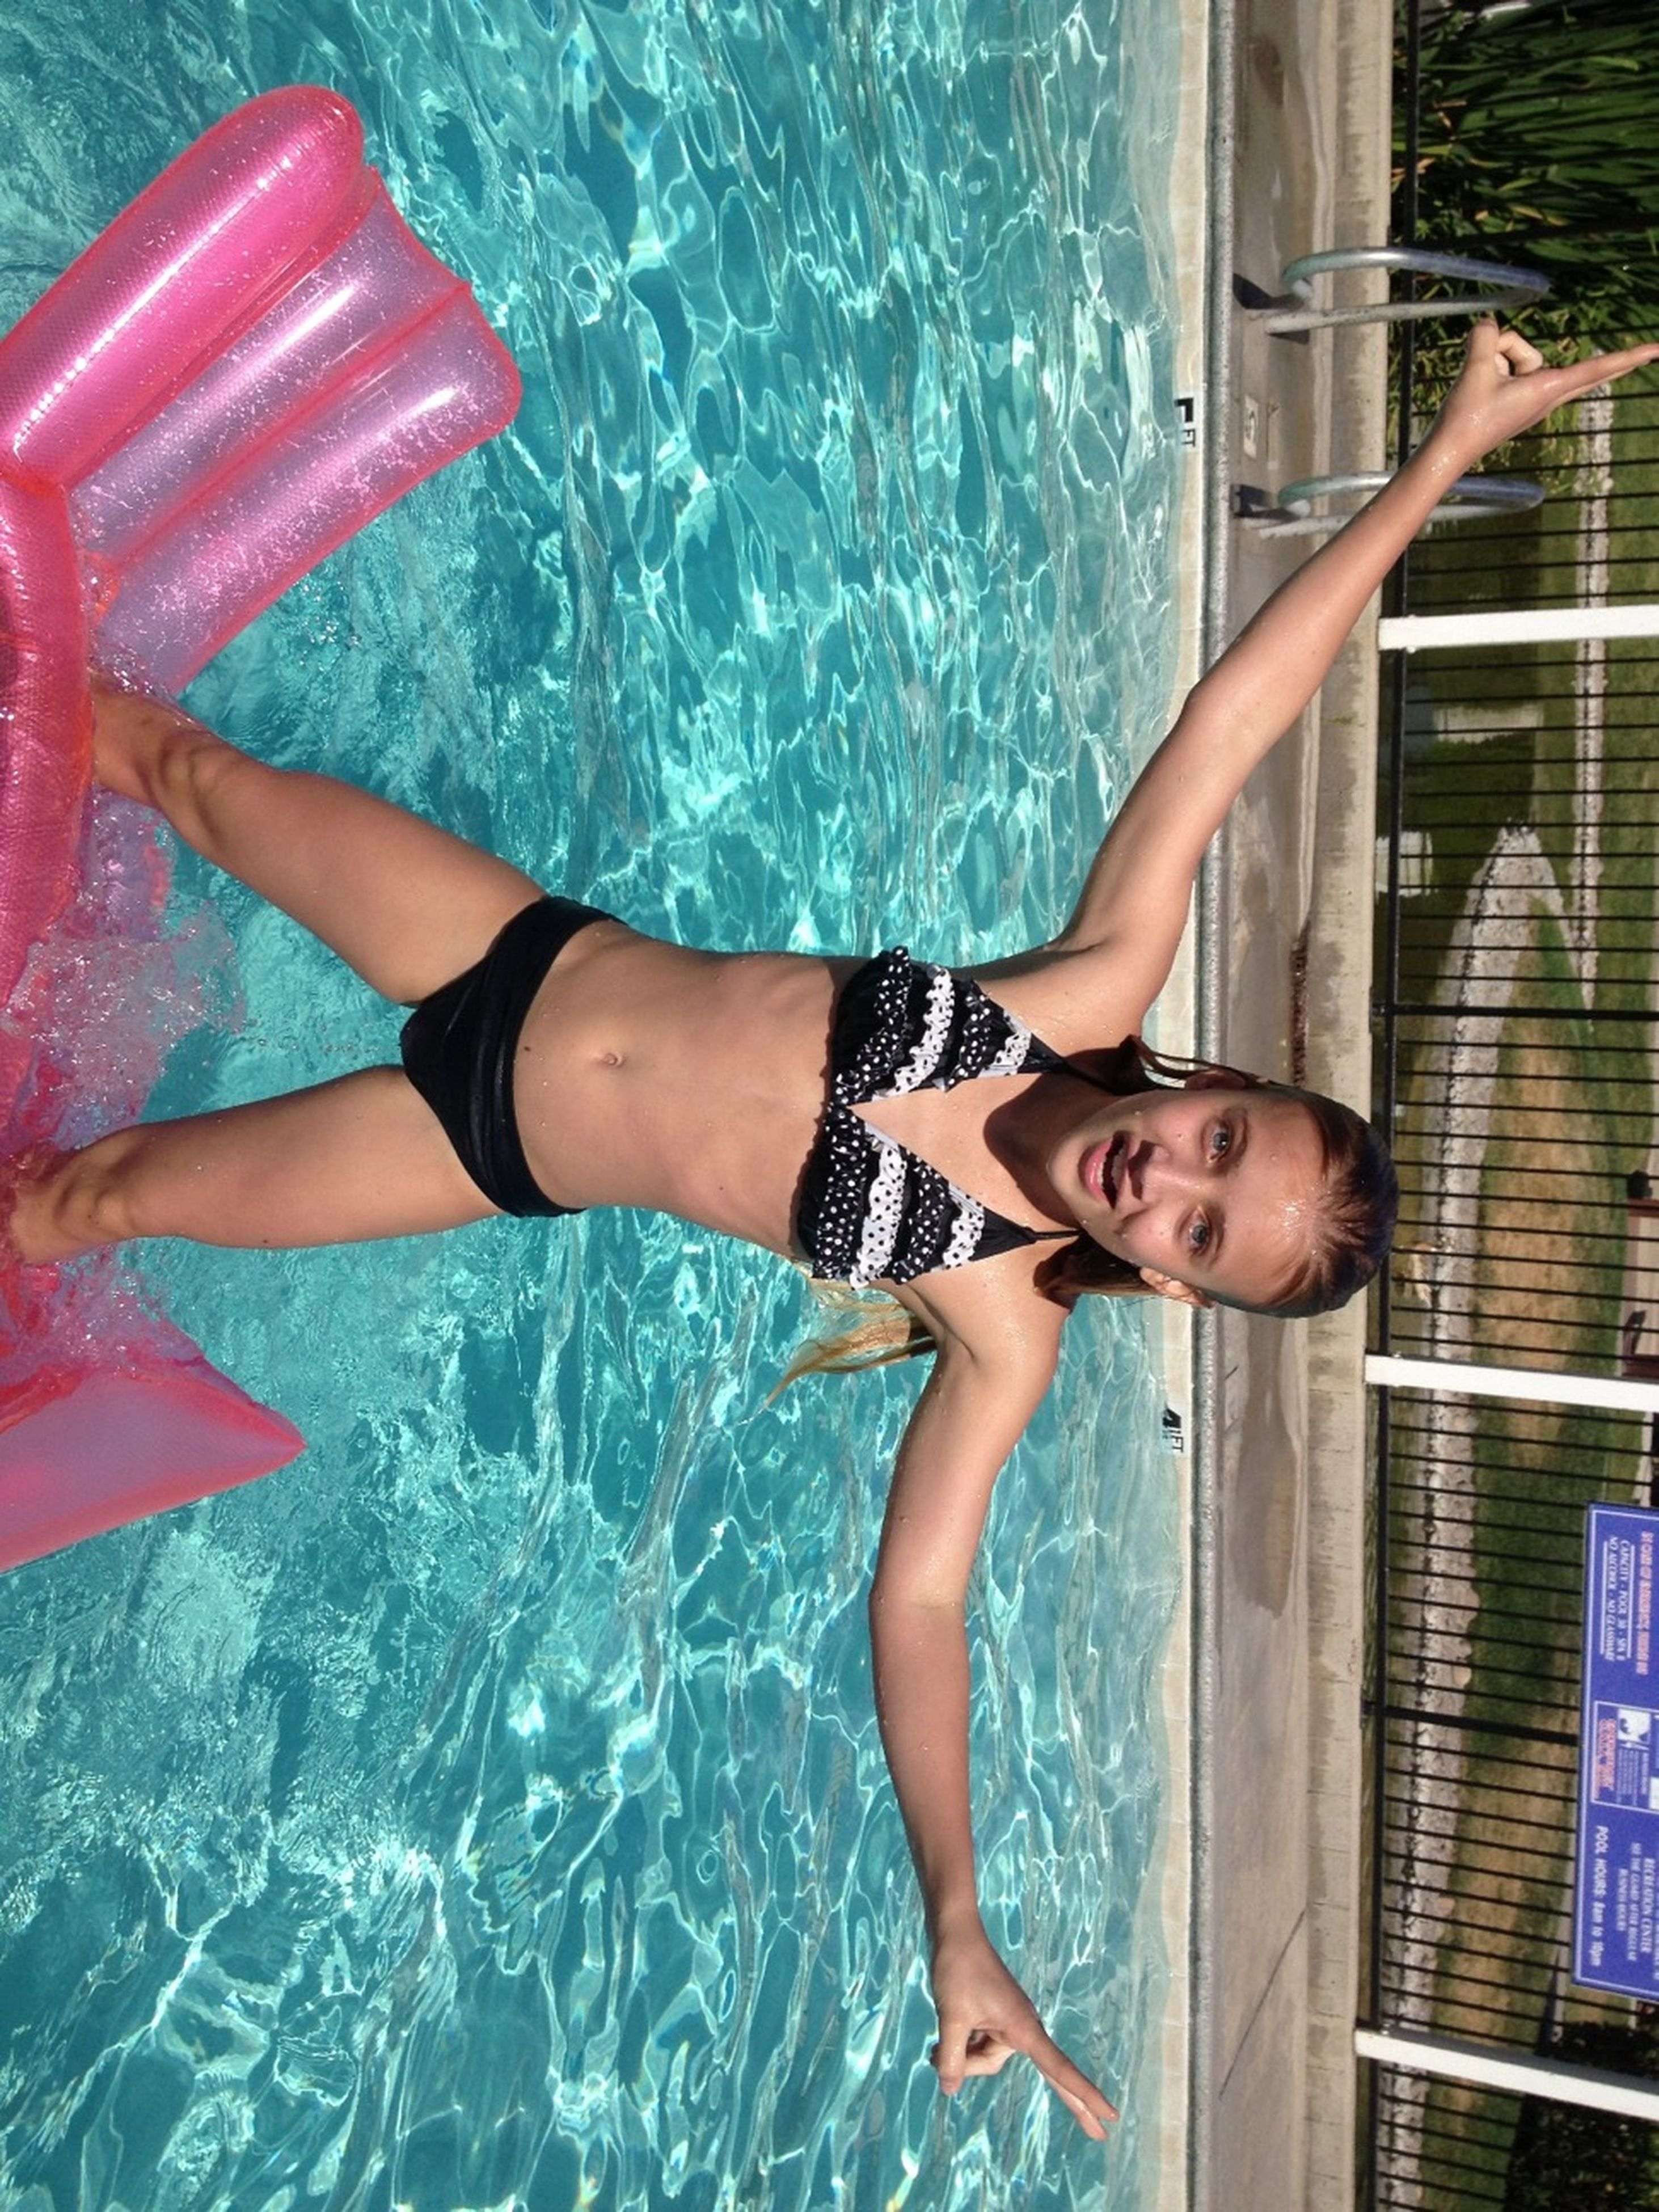 lifestyles, water, leisure activity, young adult, young women, swimming pool, full length, person, bikini, fun, dress, barefoot, casual clothing, standing, enjoyment, day